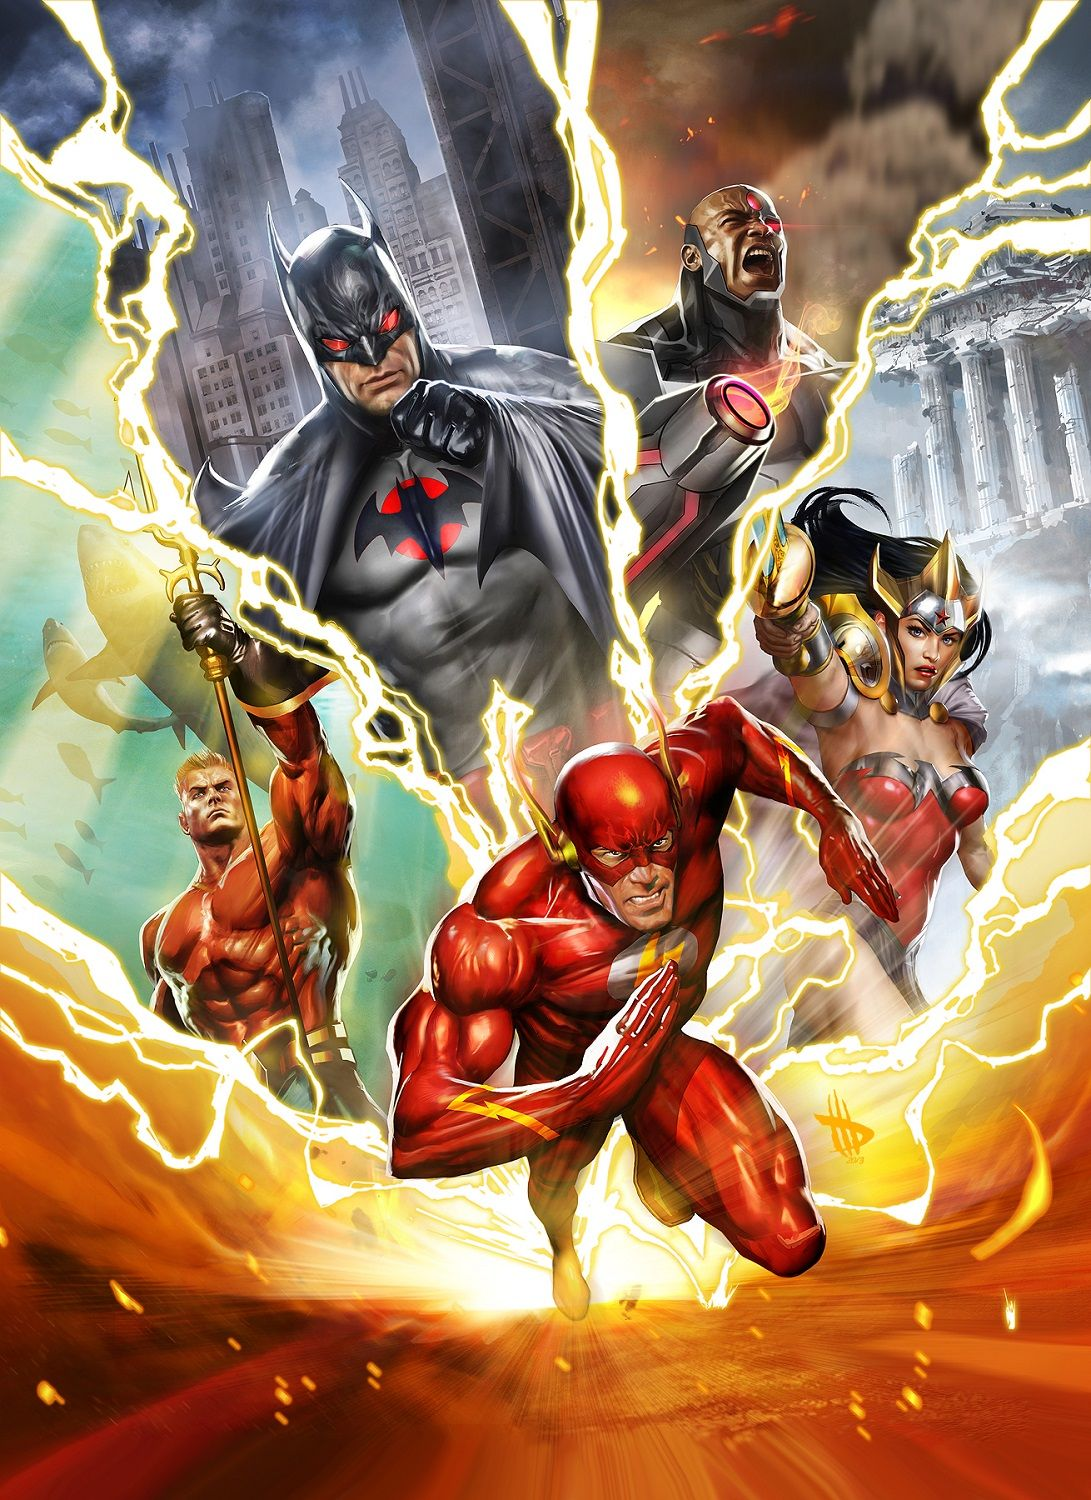 Justice League The Flashpoint Paradox アベンジャーズ バットマン 人物